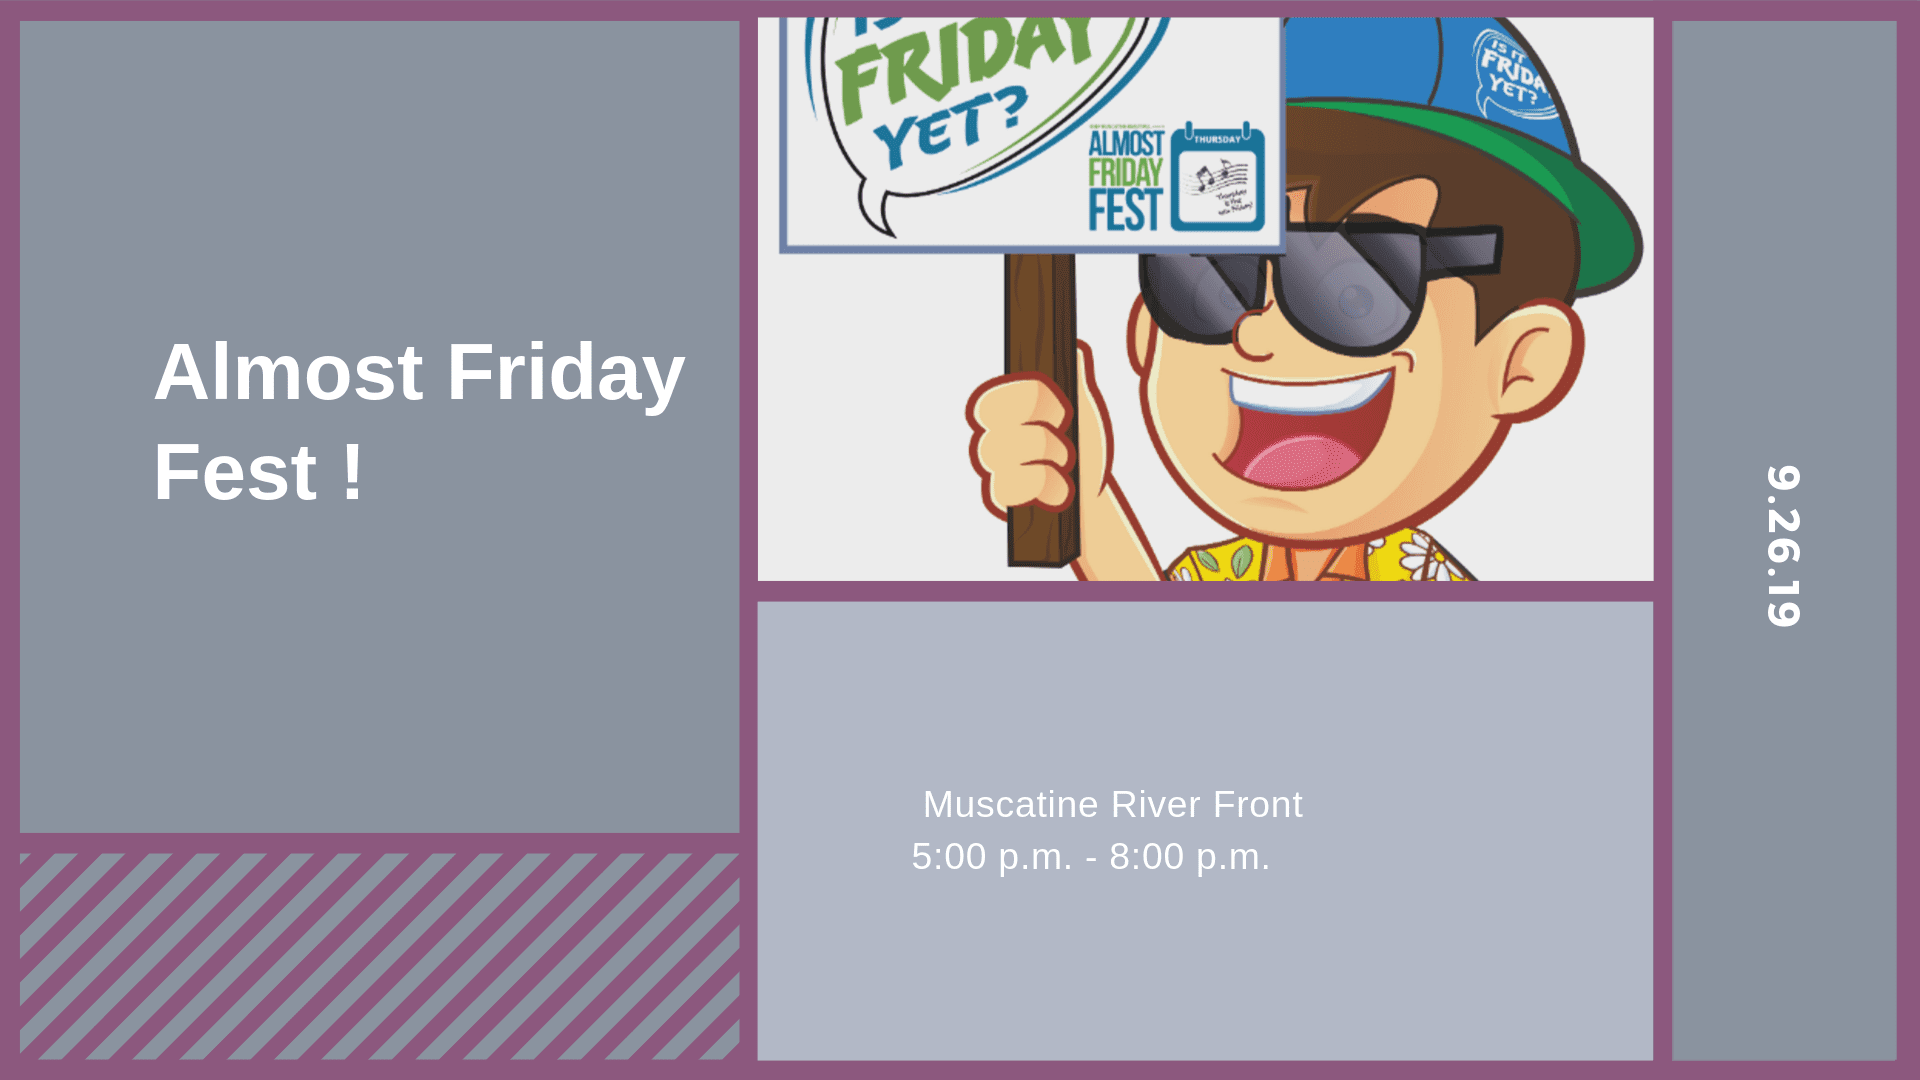 Almost Friday Fest !